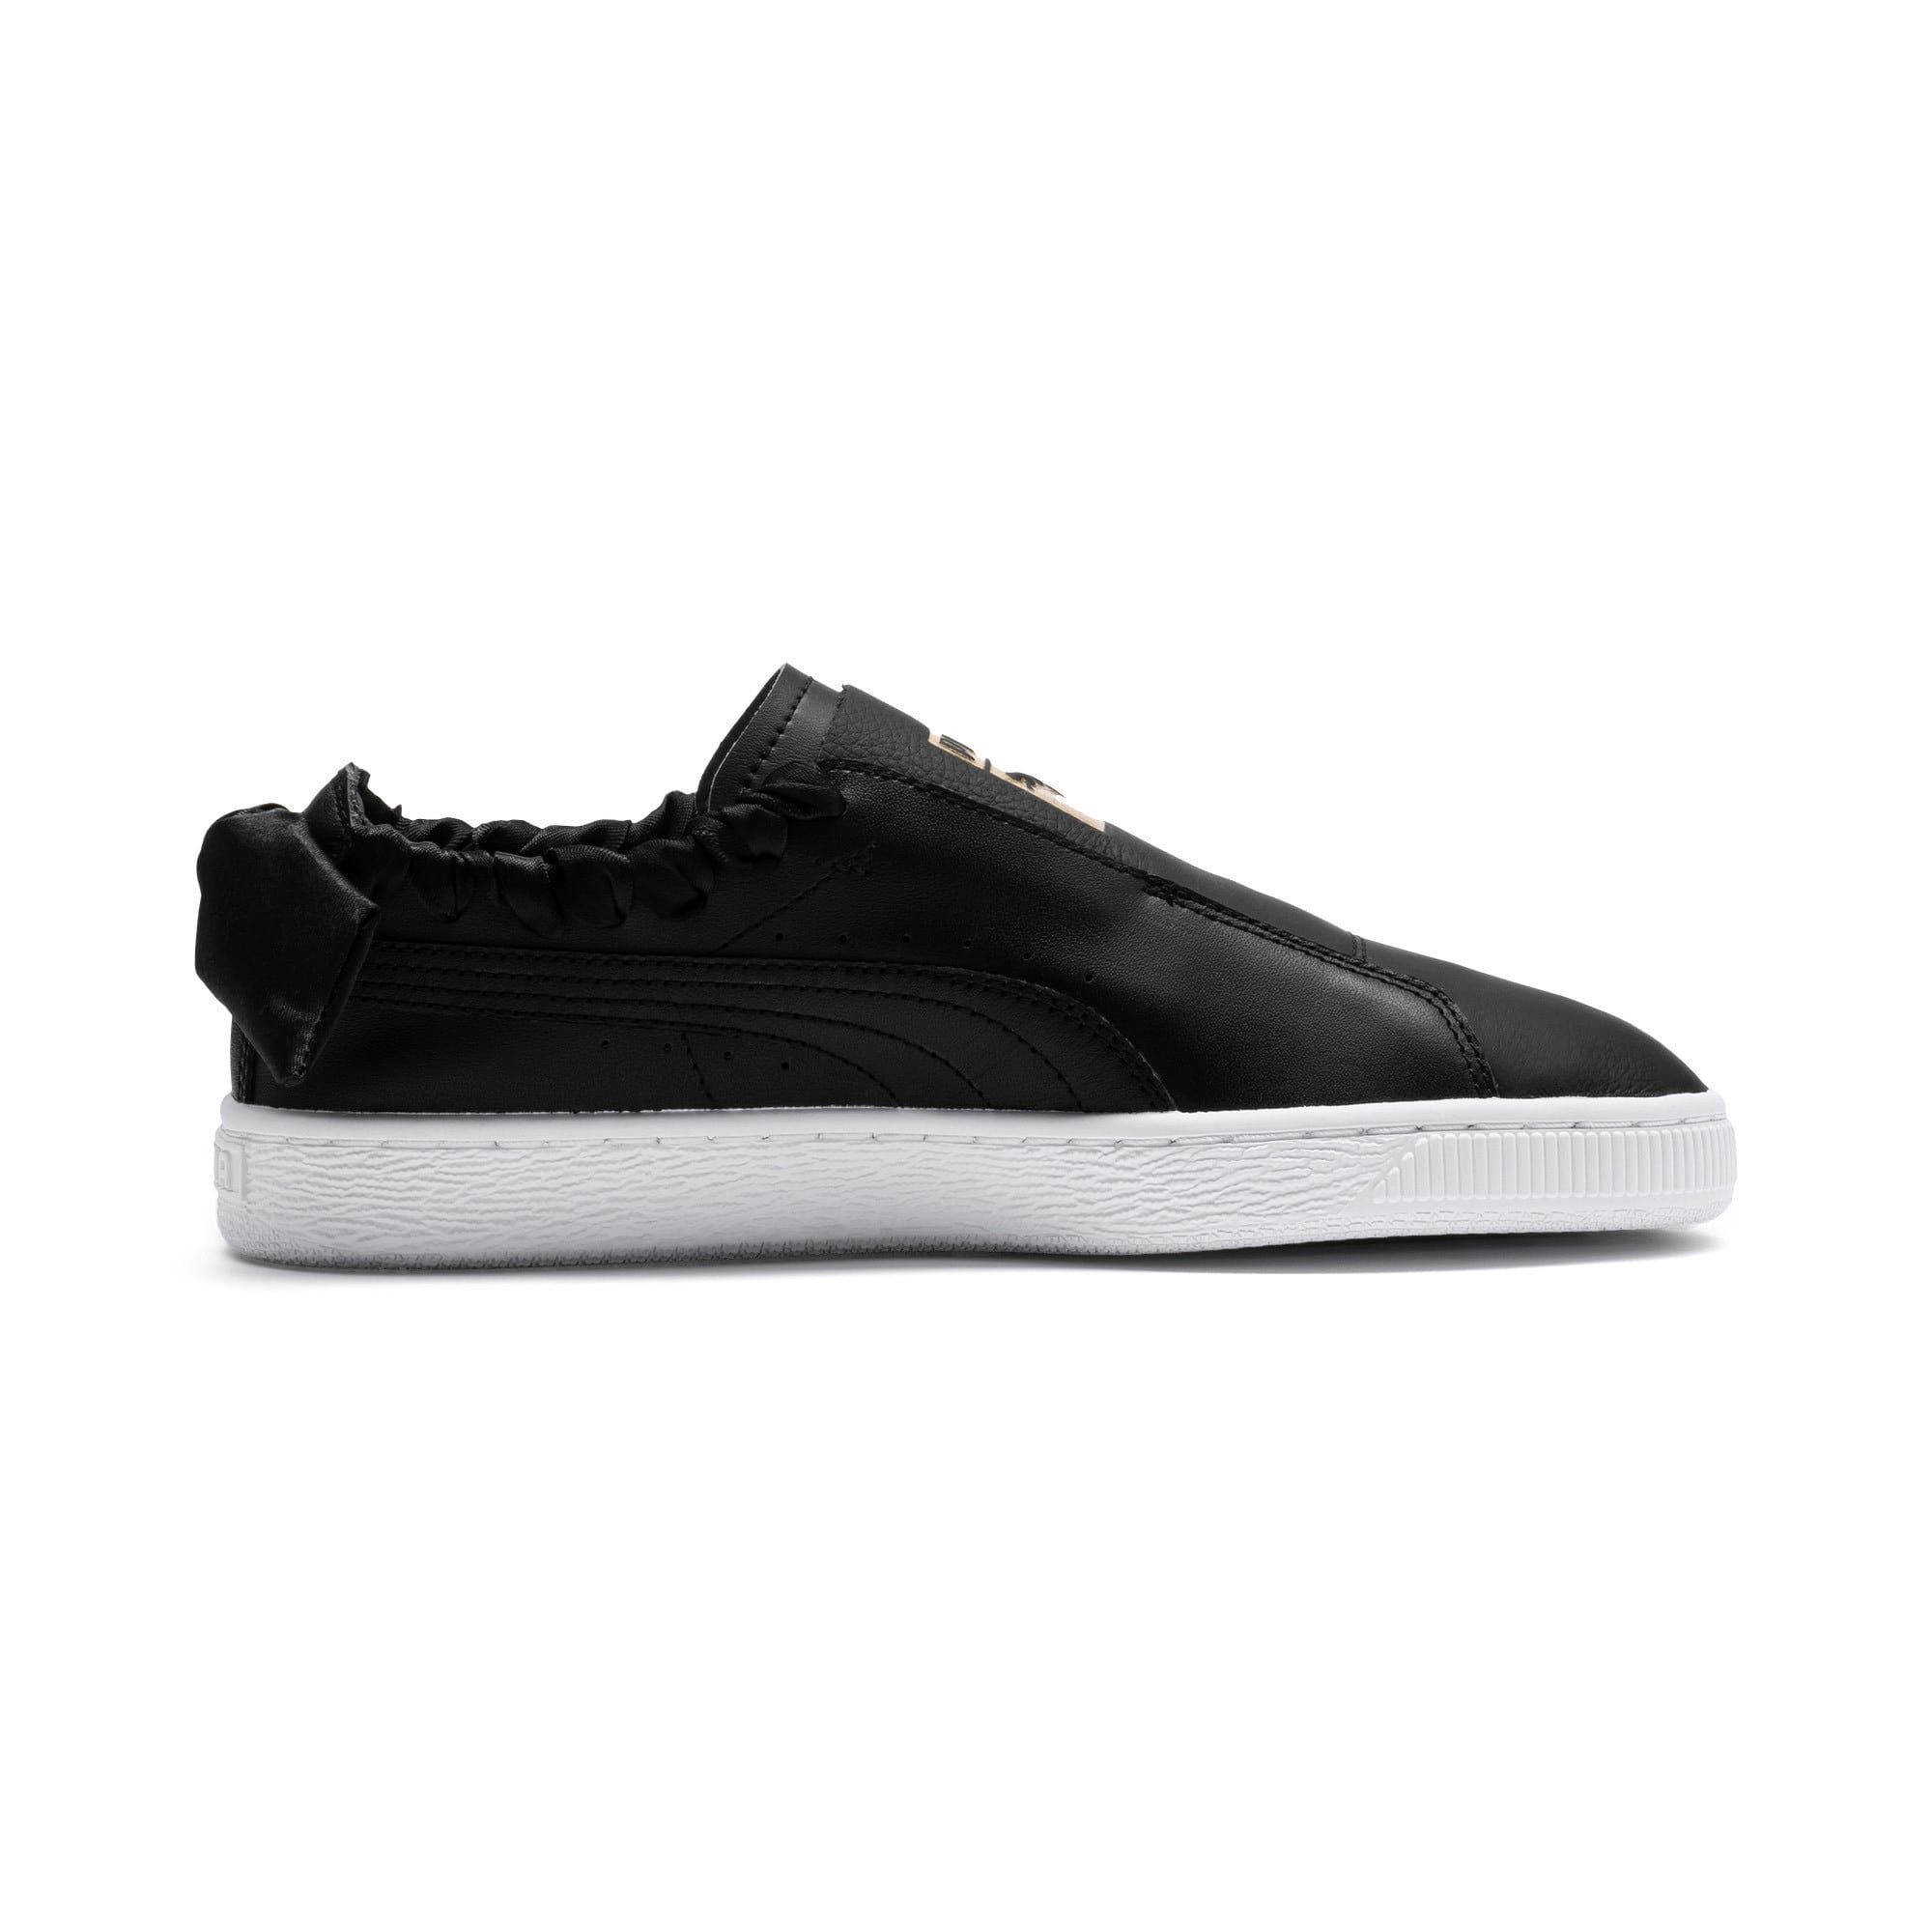 Thumbnail 6 of PUMA Basket Twist Women's Trainers, Puma Black-Puma Team Gold, medium-IND